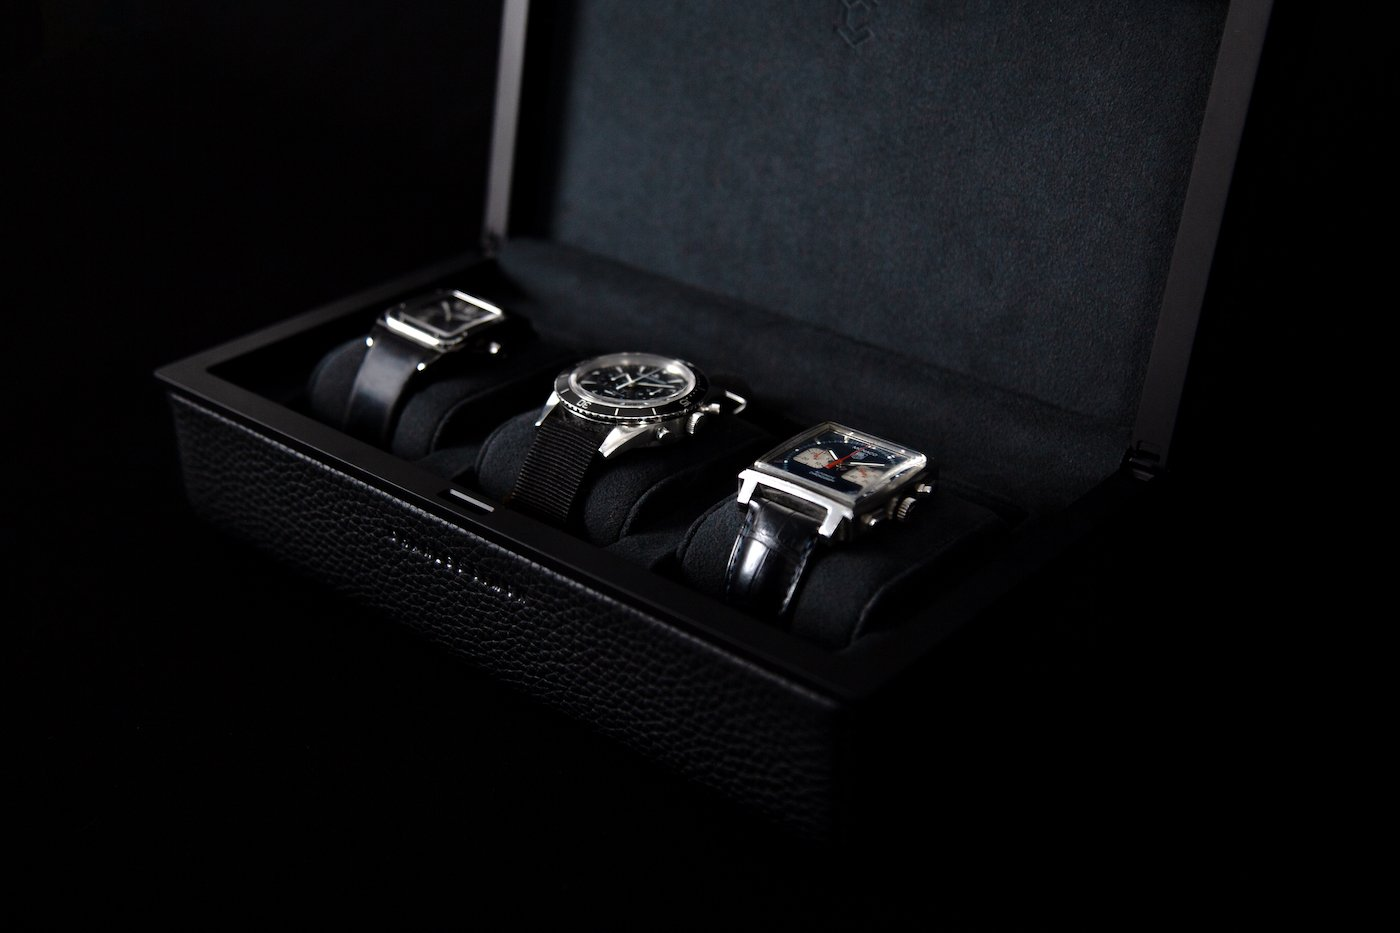 Aeronautical principles applied to watch cases